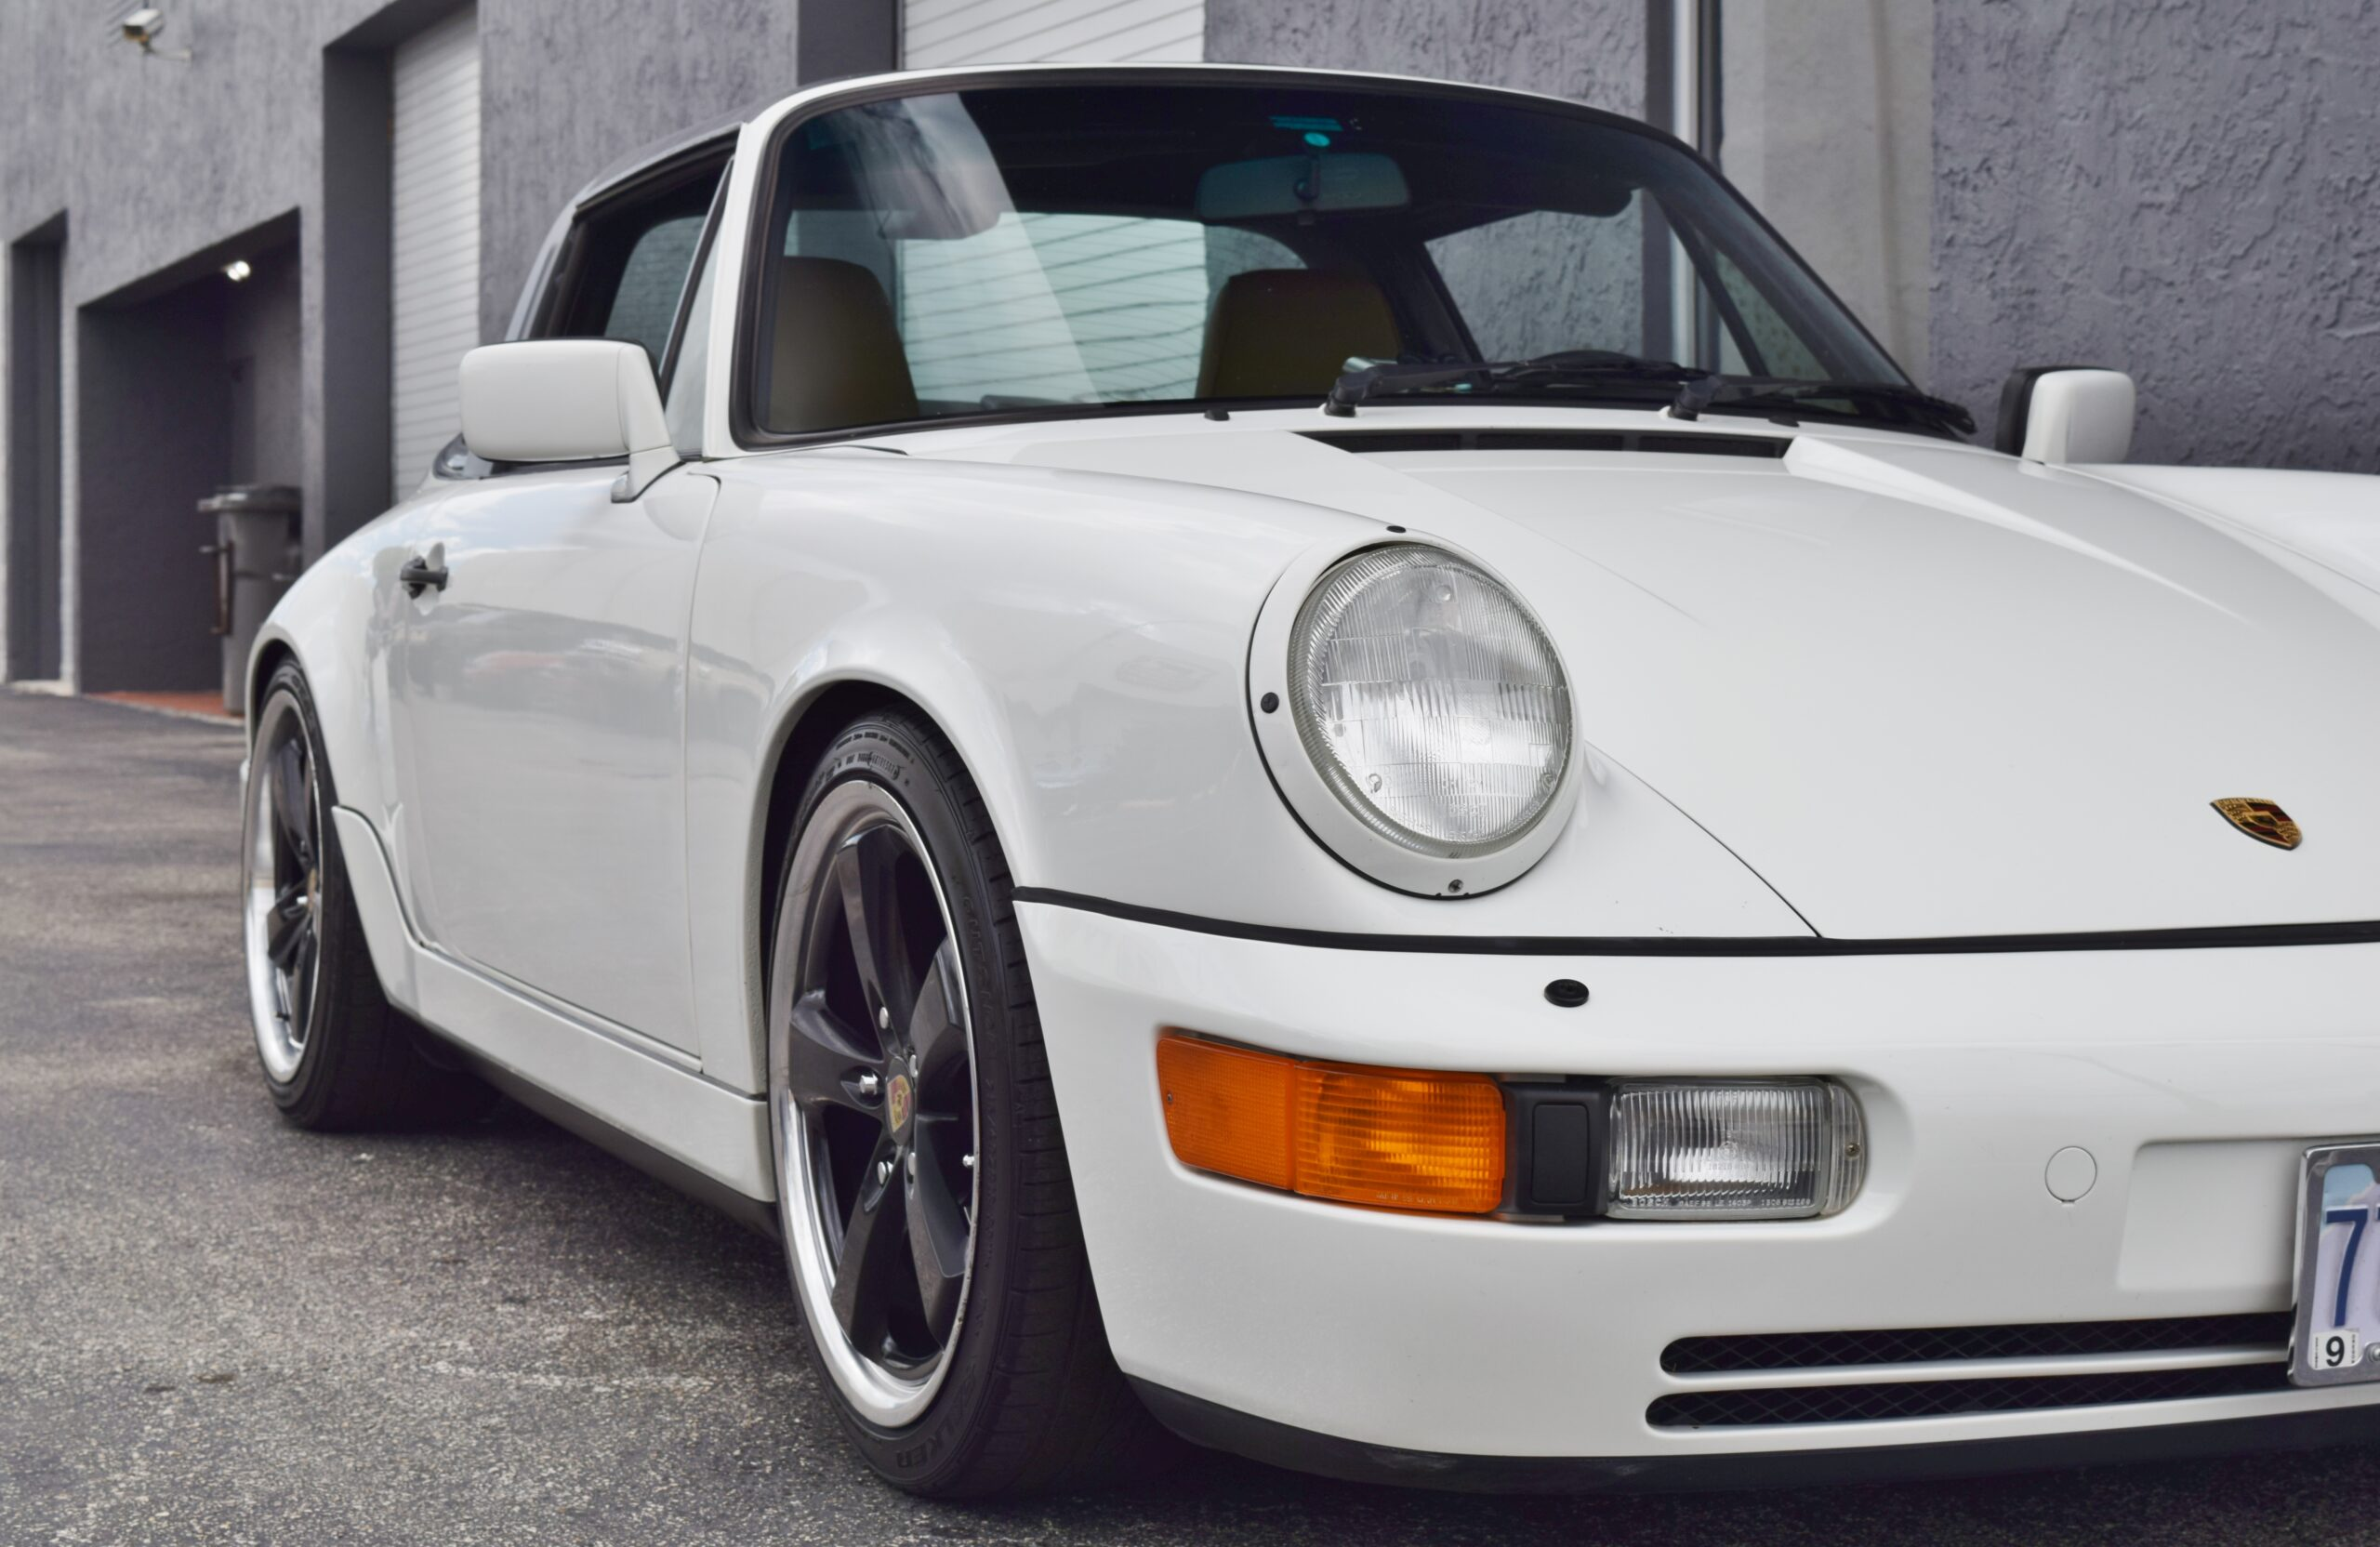 1990 Porsche 911 Targa 964 C2 Rare 1 of 158 – ONLY 71K MILES! 5 Speed Manual – Carrera 2 – Clean History